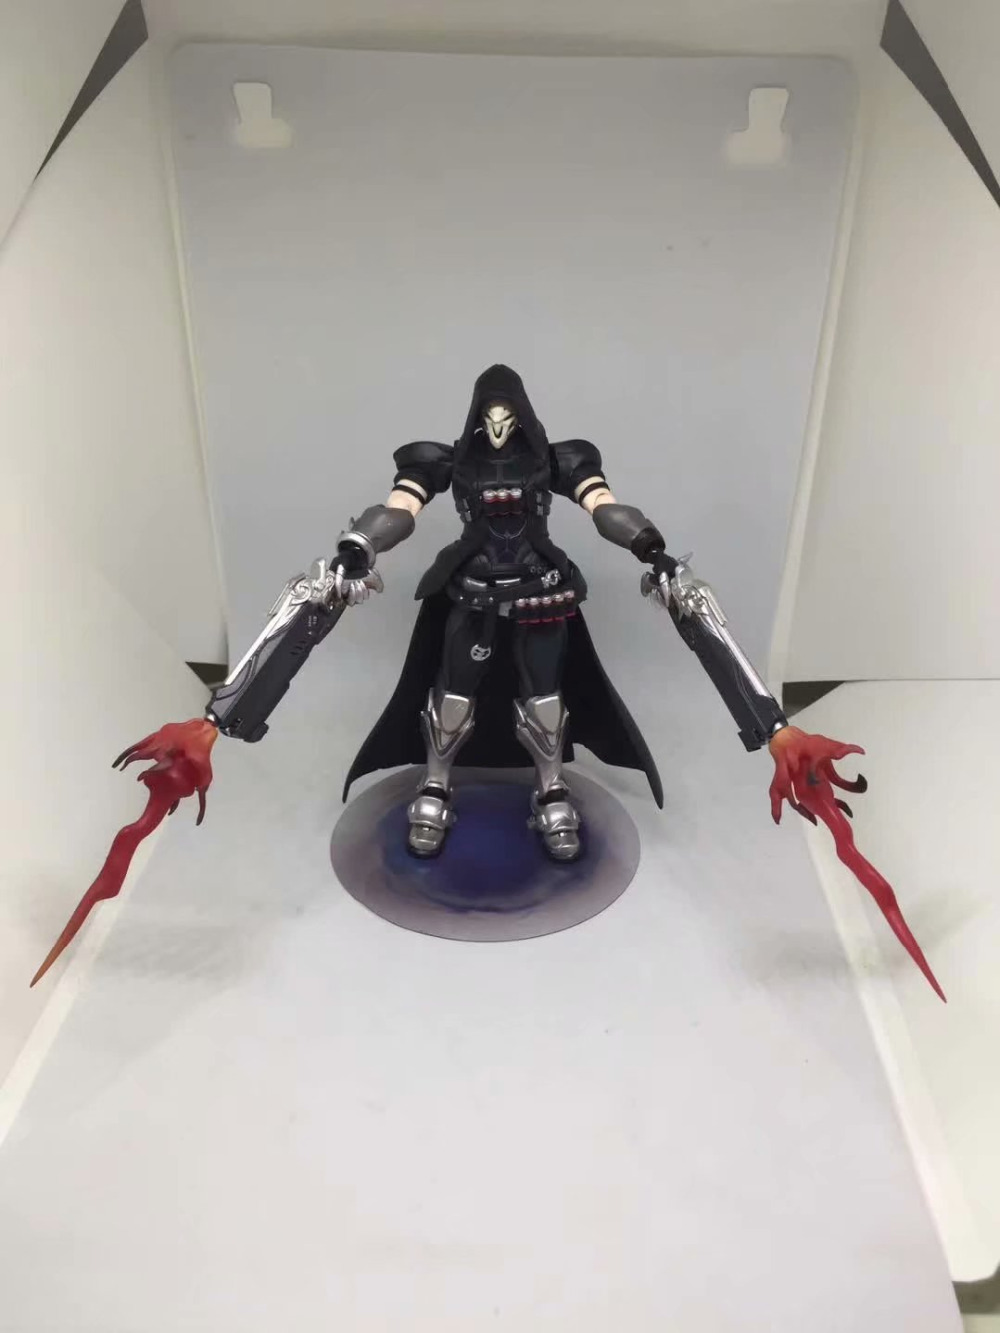 17cm ow Figma 393 Overwatches Reaper Series PVC Action Figure Model Toys Doll Gift 4